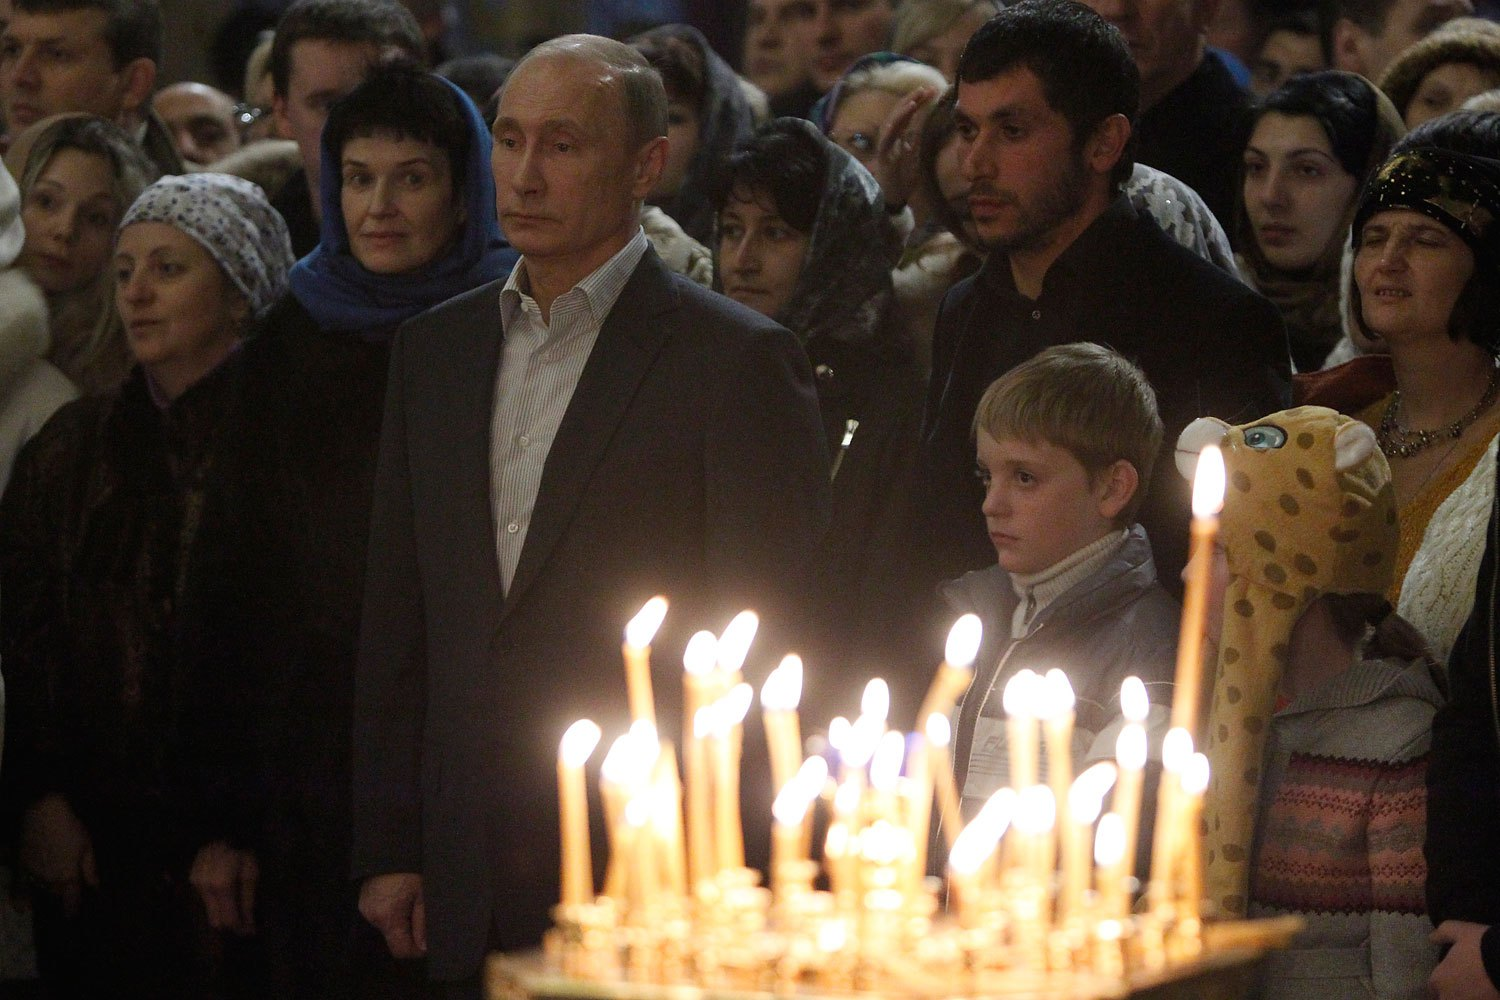 Russia's President Vladimir Putin attends the Orthodox Christmas service at the Cathedral of the Holy Face of Christ the Savior in the Russian city of Sochi on Jan. 7, 2014.